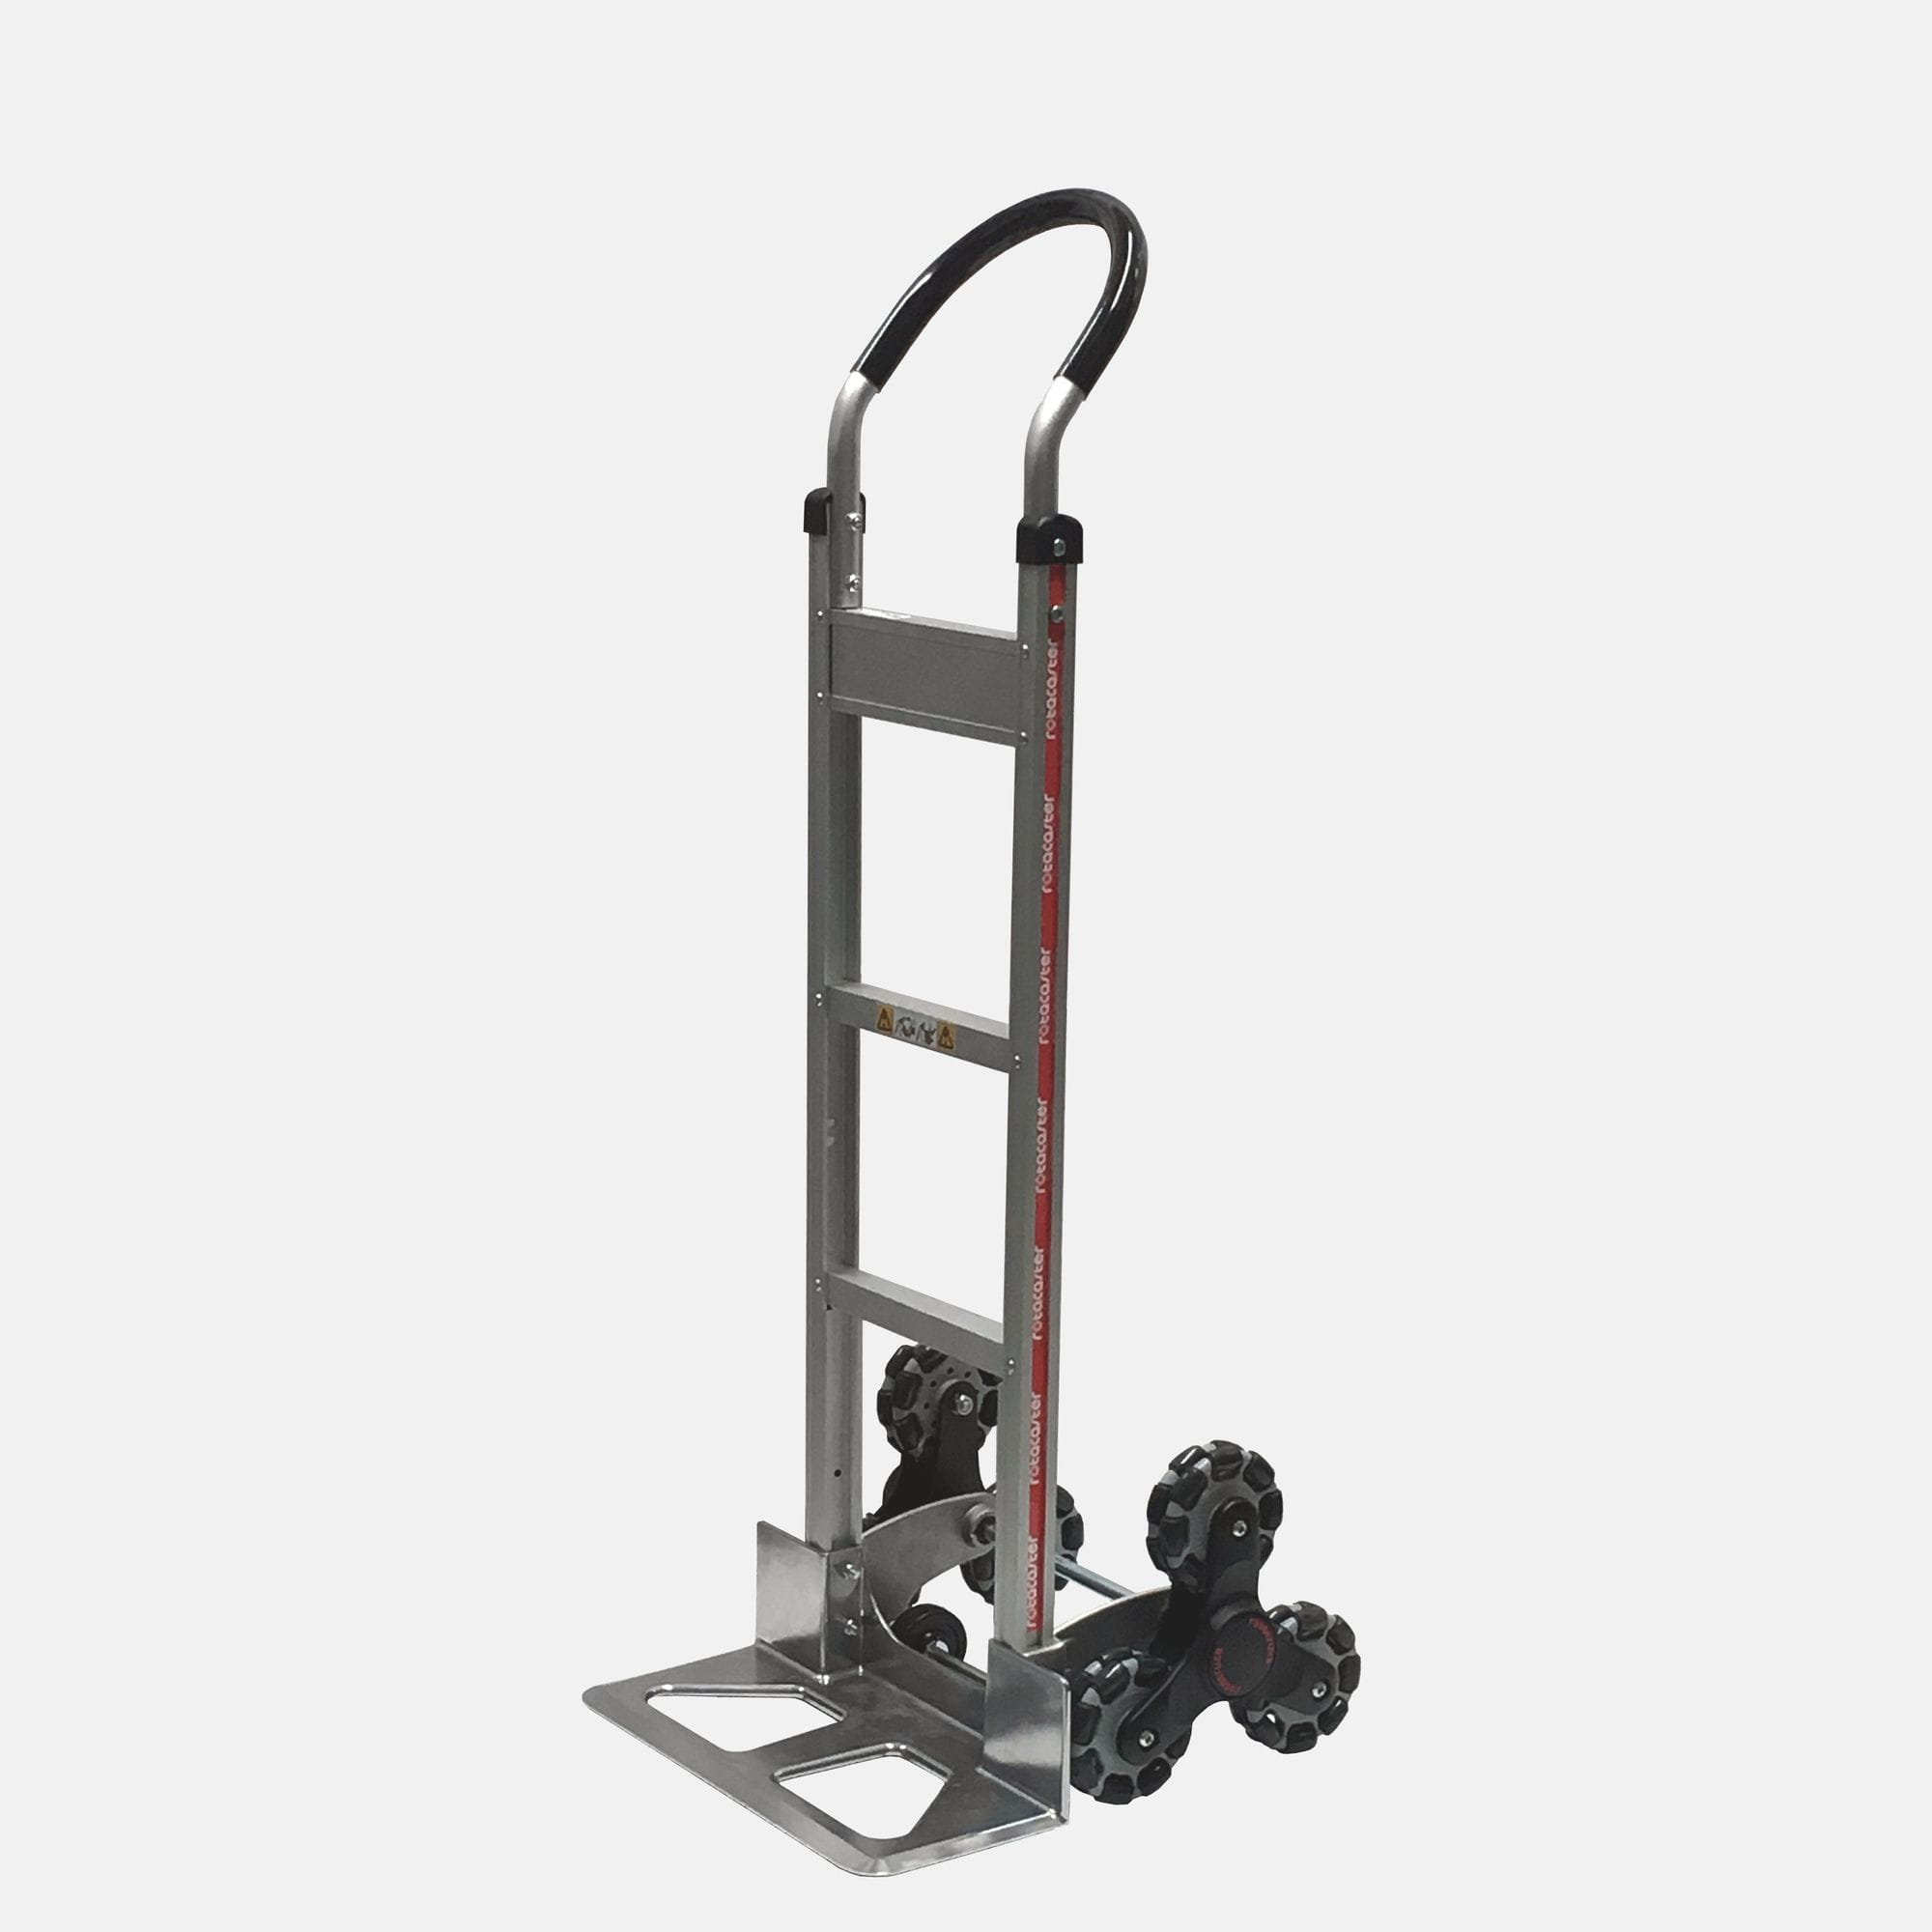 Rotatruck Stair Climber LITE with double Rotacasters